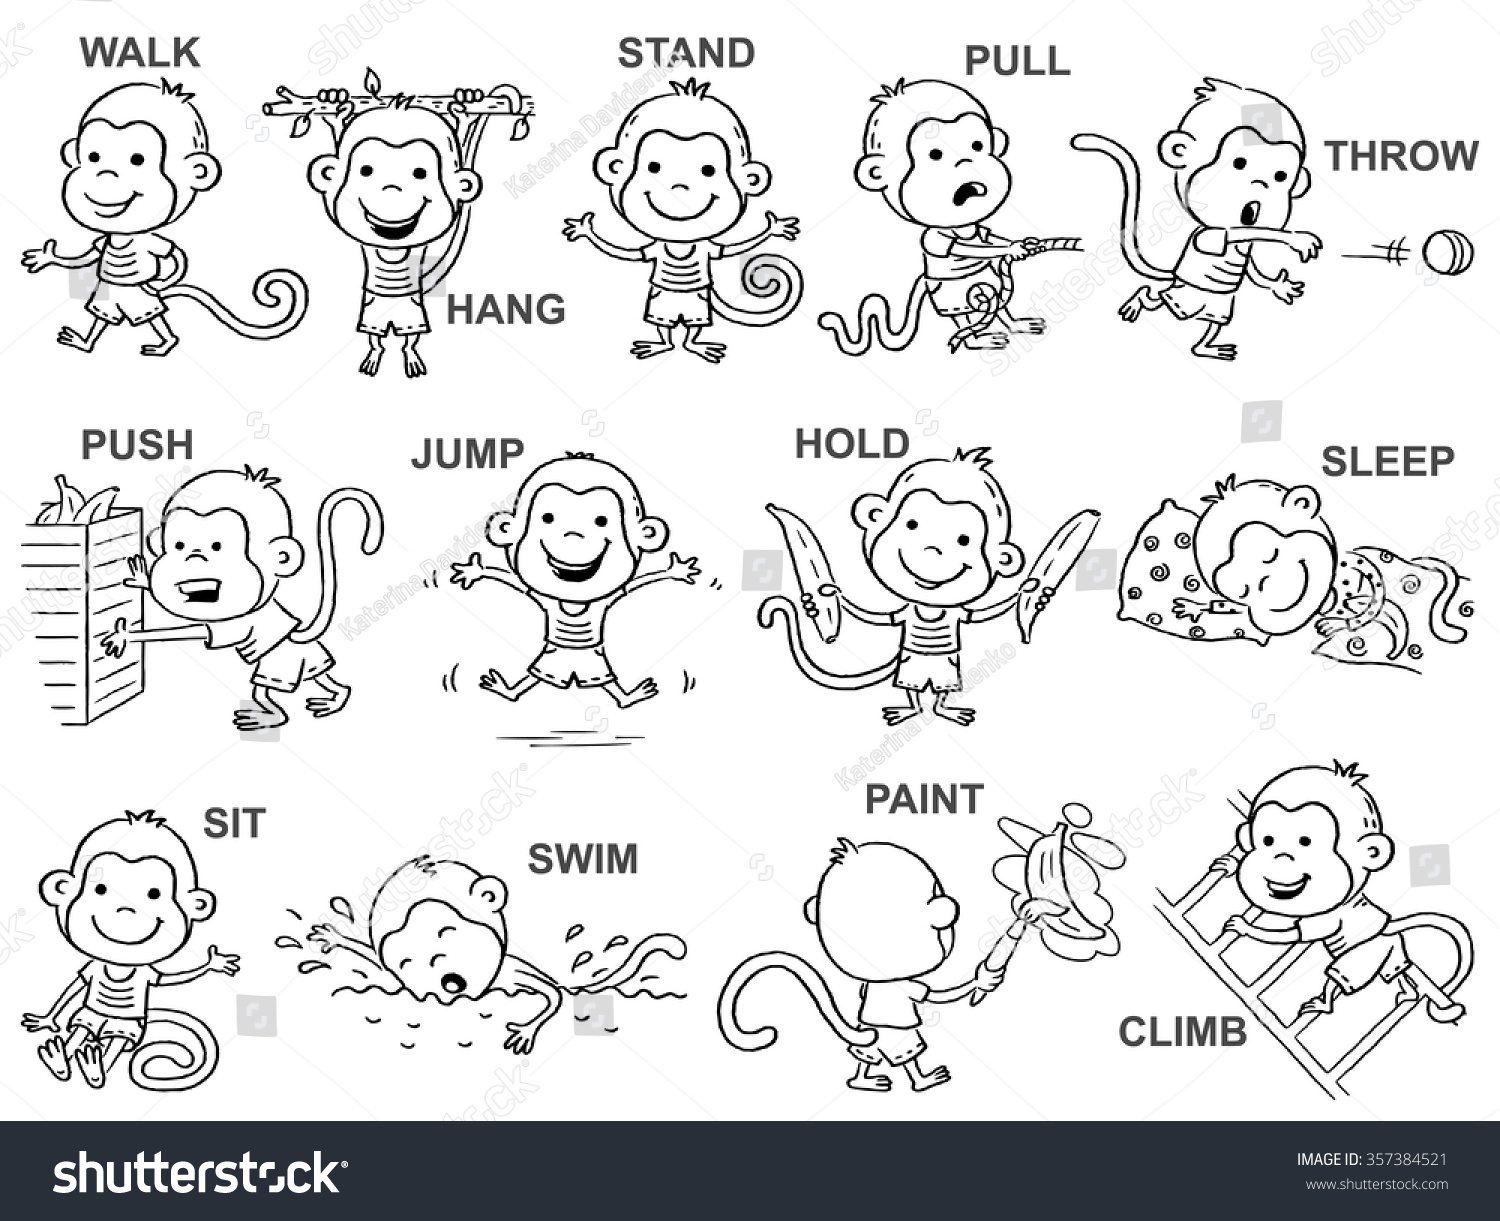 verbs action pictures cute monkey character stock vector  verbs of action in pictures cute monkey character black and white outline